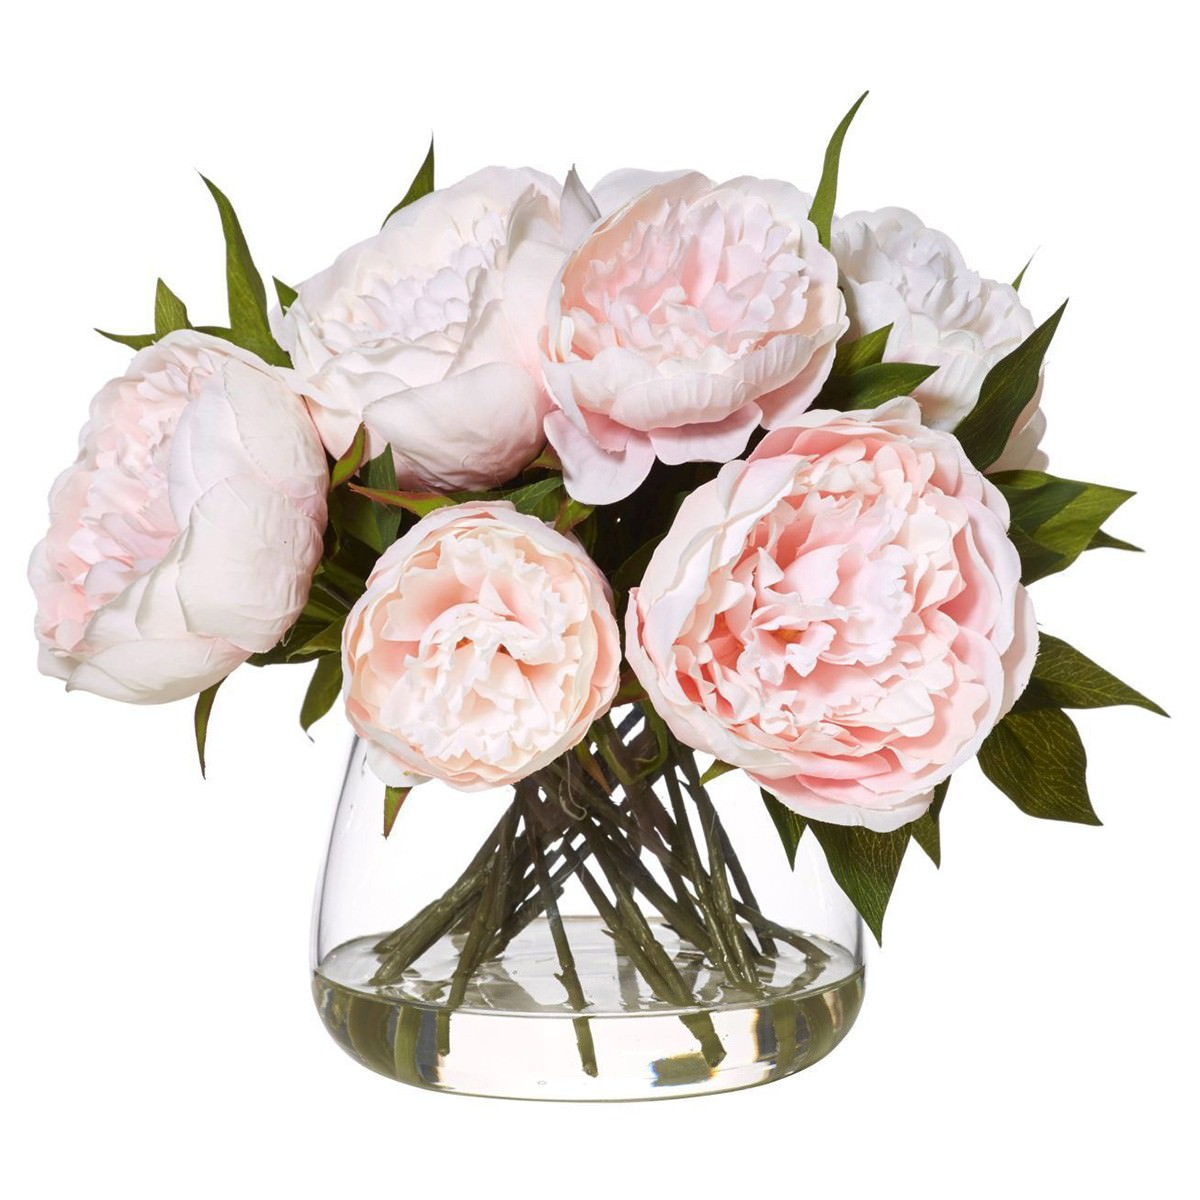 Artificial Peony in Rounded Classic Bowl, Large, Pink Flower